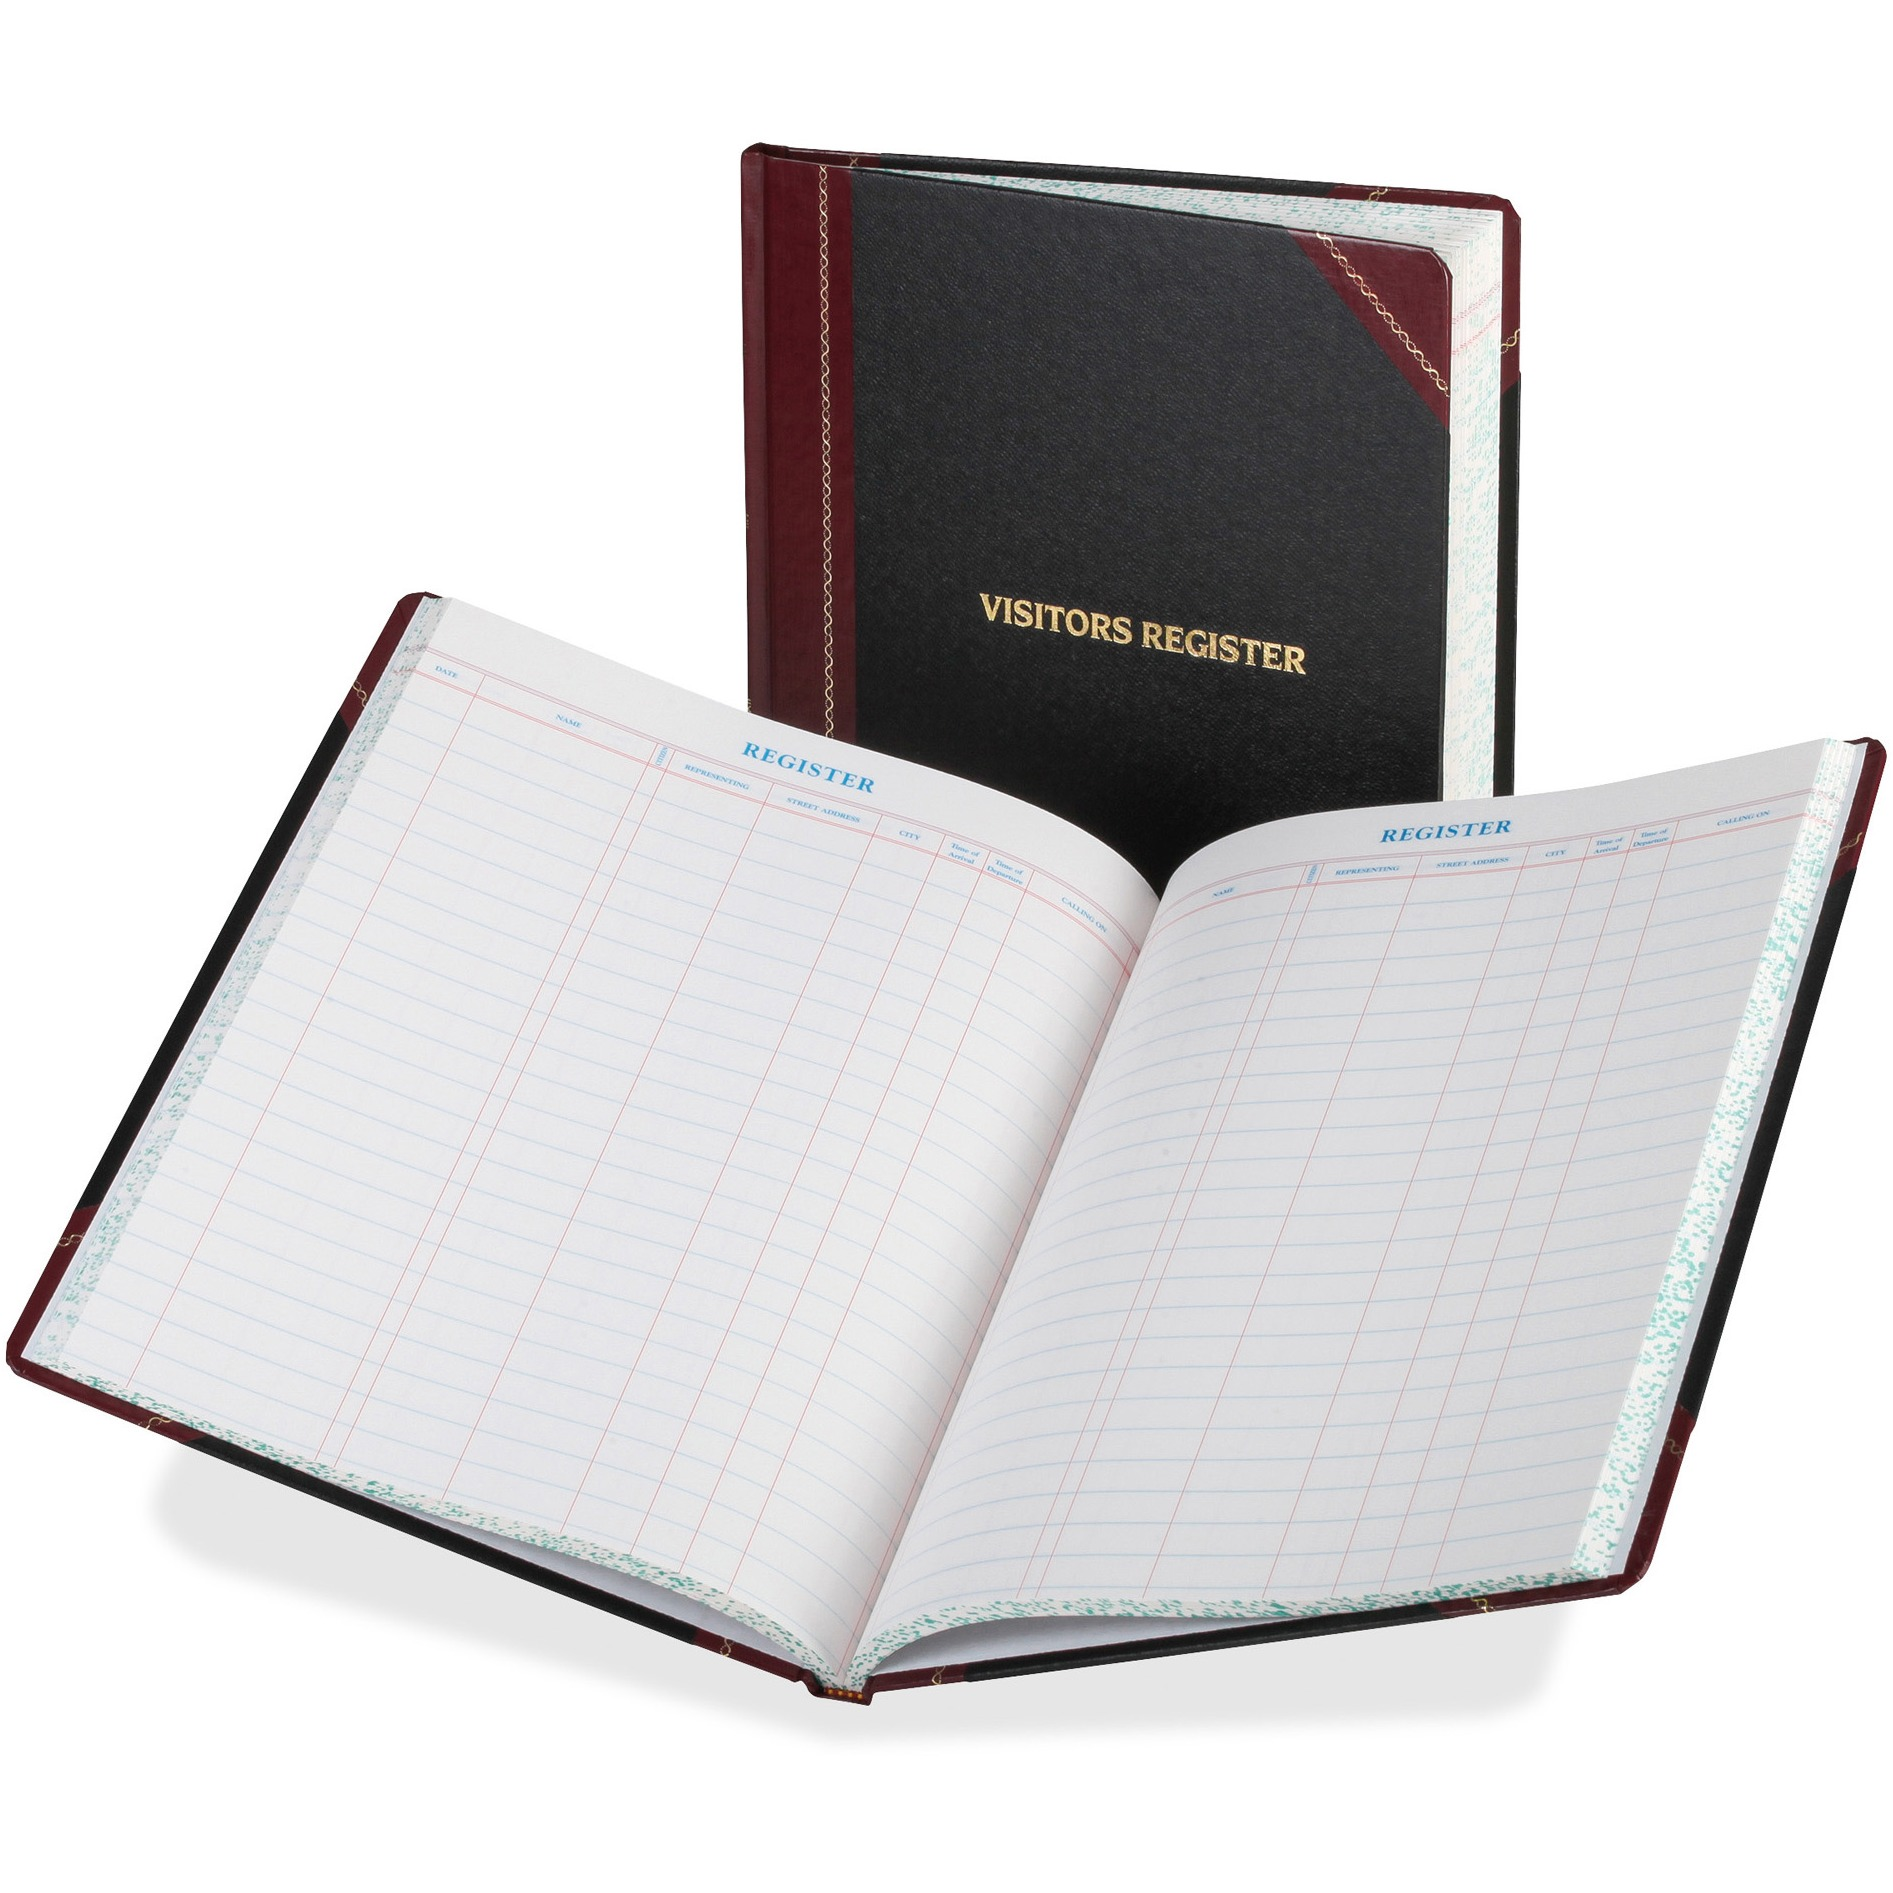 Boorum & Pease Visitor Register Book, Black Red Hardcover, 150 Pages, 10 7 8 x 14 1 8 by TOPS Products